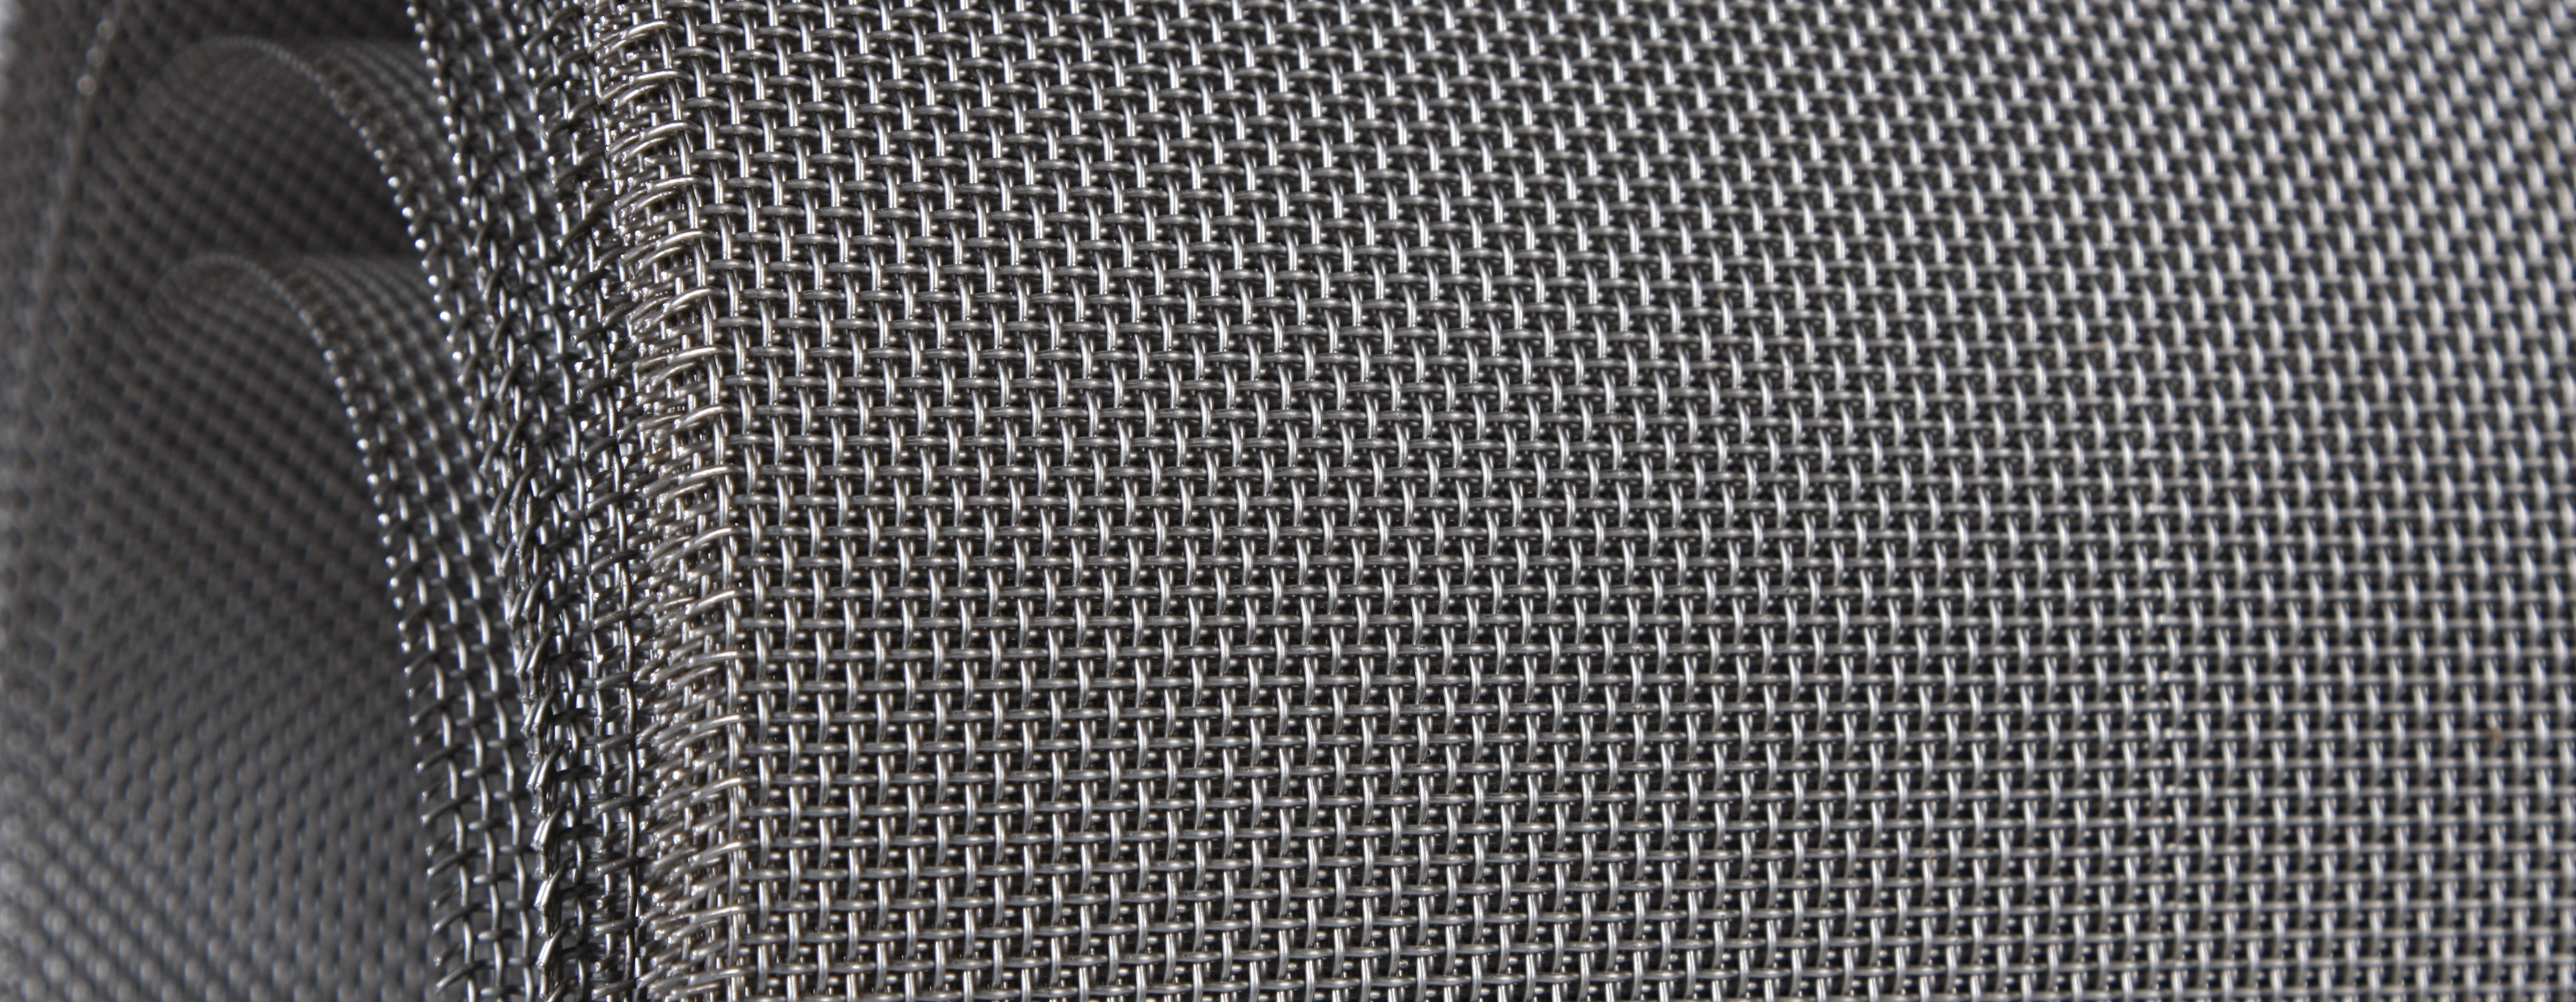 Stainless Steel Woven Mesh Stainless Steel Wire Amp Mesh